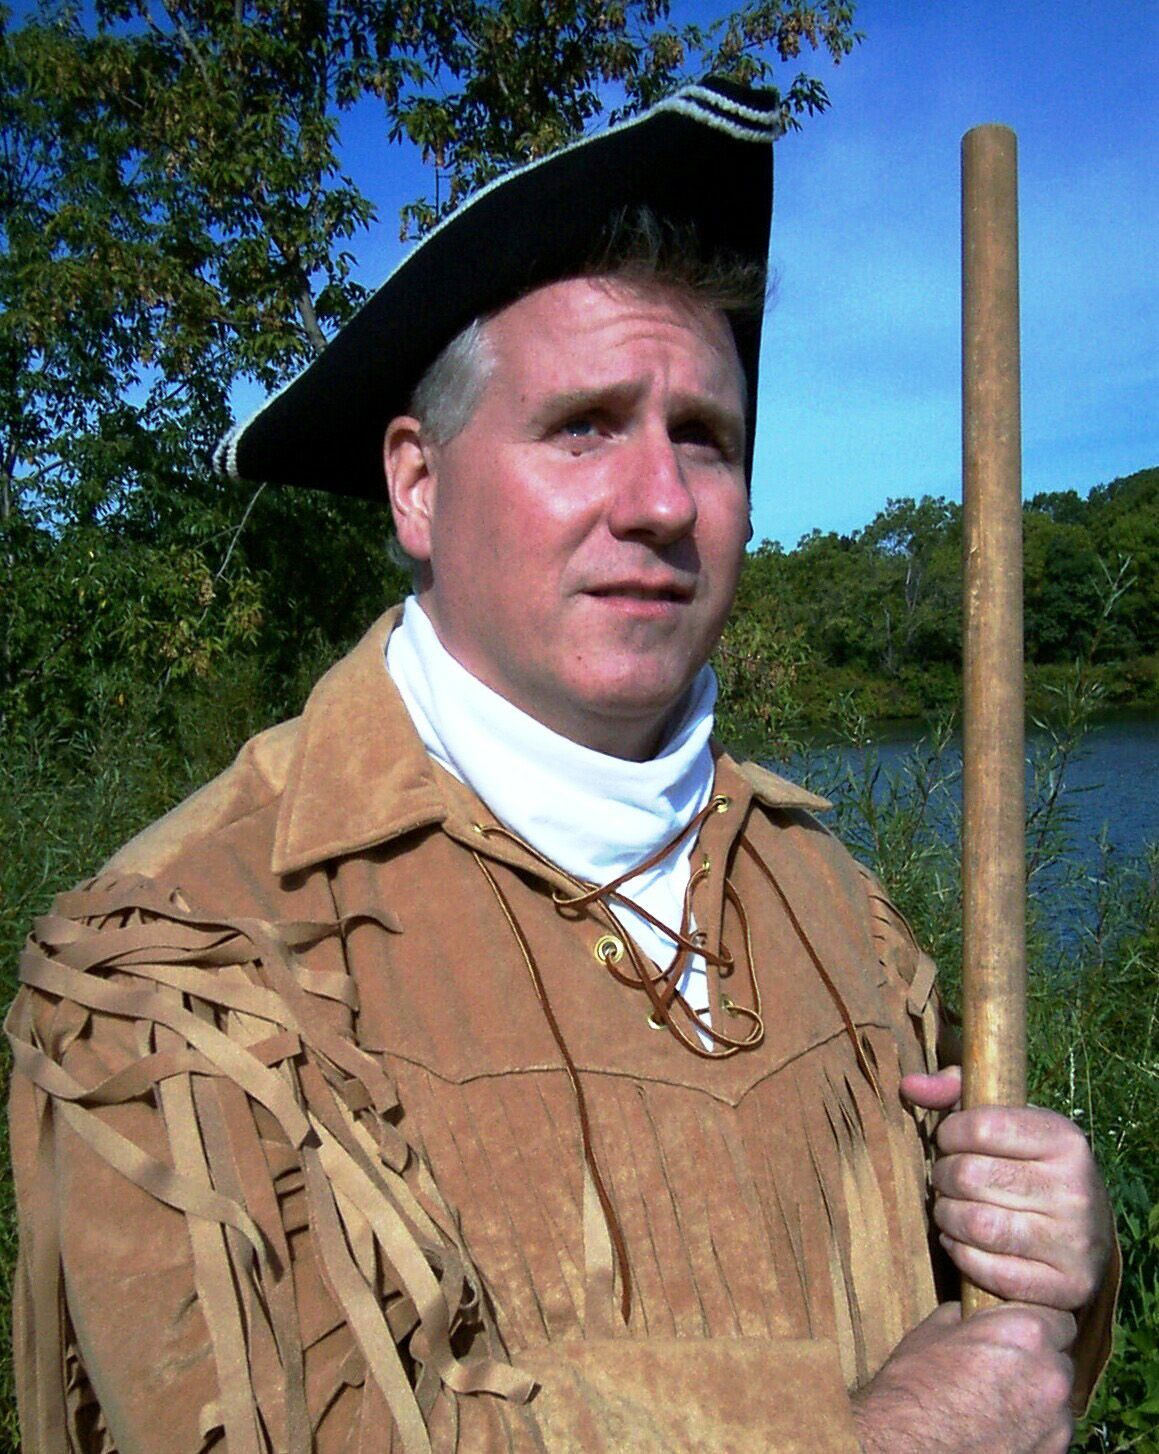 Lewis Amp Clark Meriwether Lewis Member Of The Corps Of